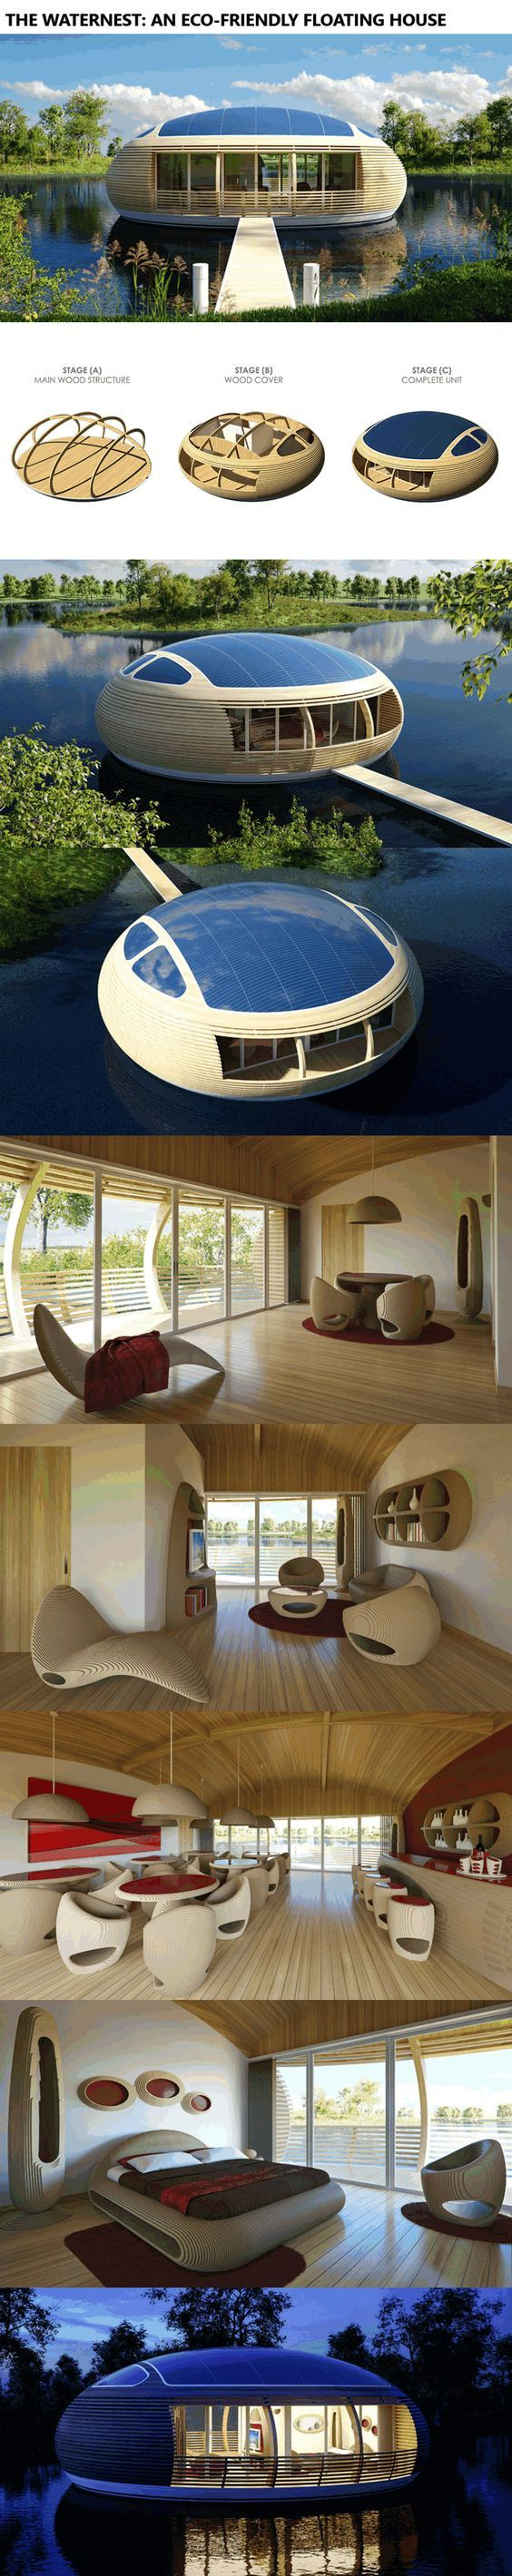 Shipping container homes living for the future earth911 com - Best 25 Sustainability News Ideas On Pinterest Earth News Mother Earth News And Inside Chicken Coop